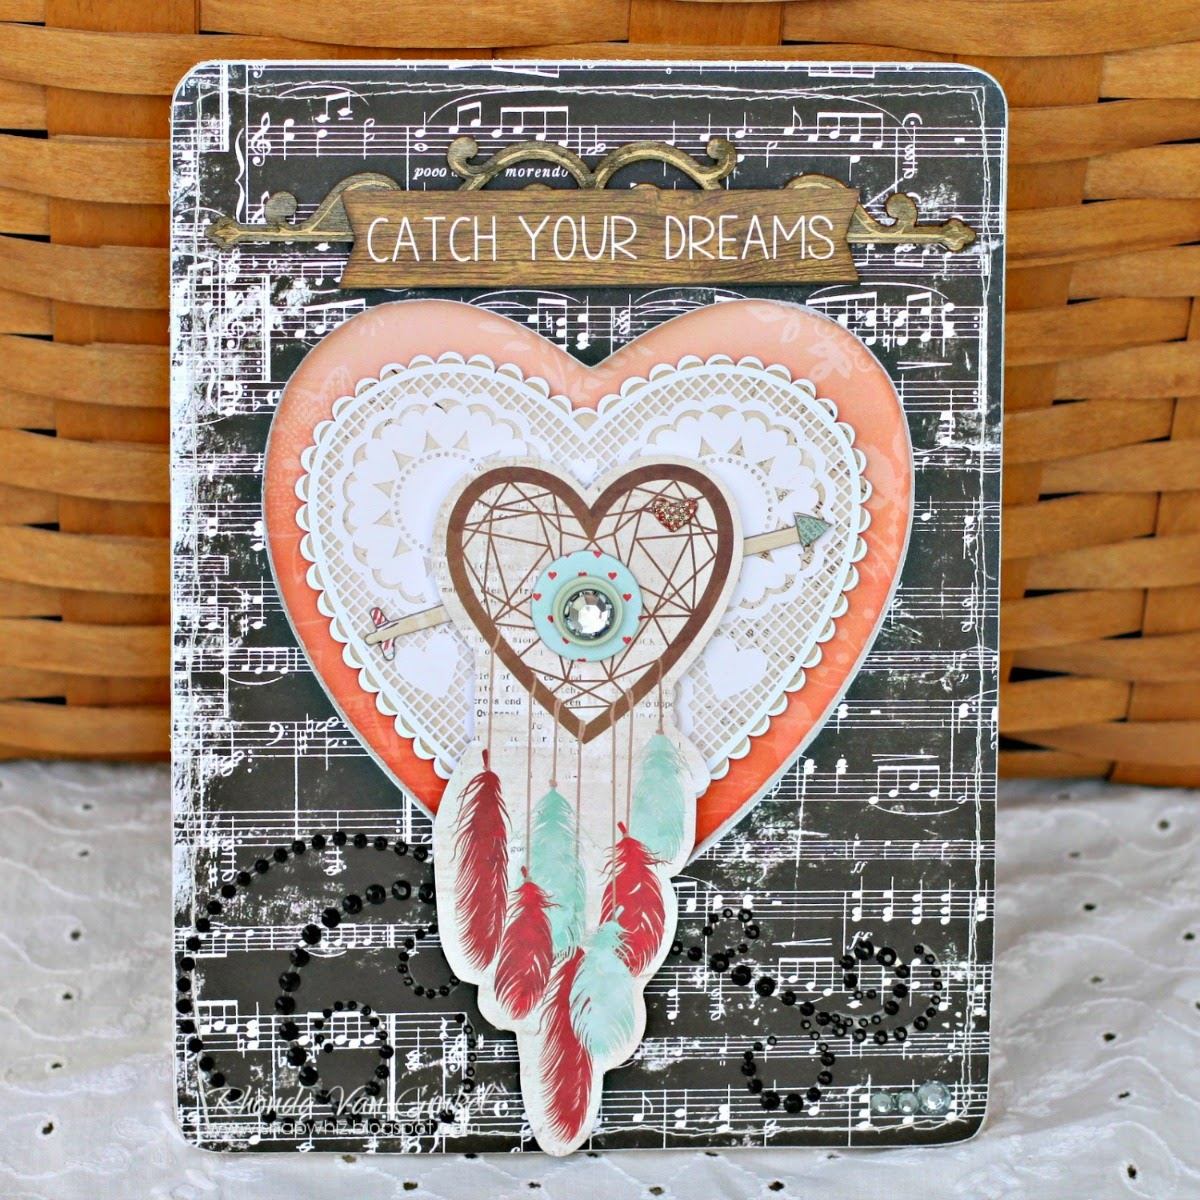 Catch Your Dreams Altered Picture Frame Home Decor by Rhonda Van Ginkel for BoBunny Featuring Star Crossed Collection